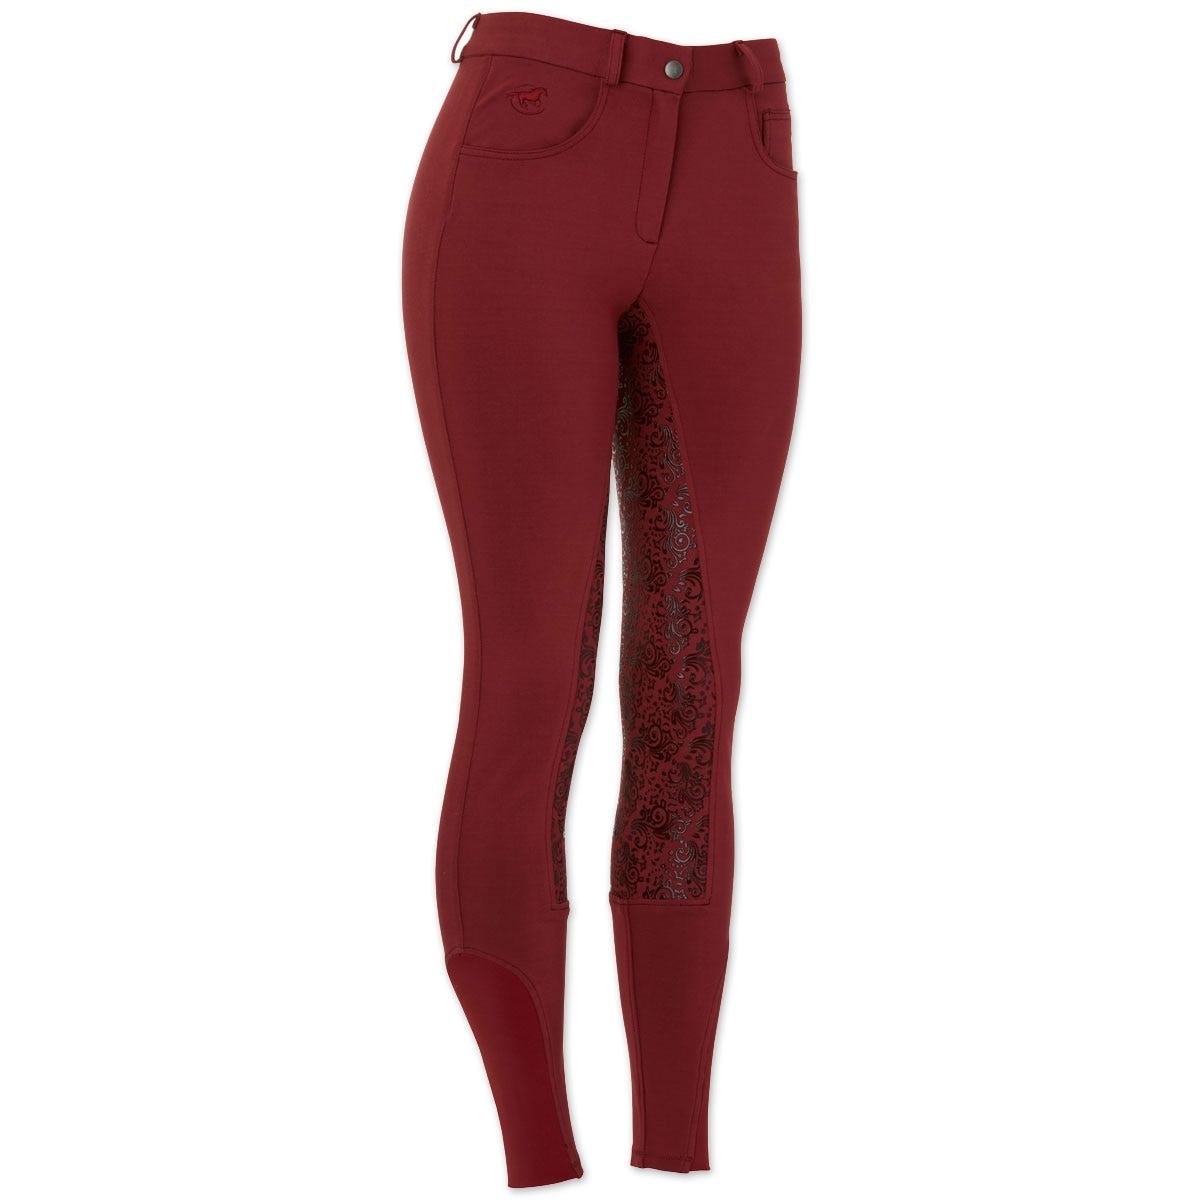 Piper Knit Breeches by SmartPak - Mid-Rise Full Seat- Sale!